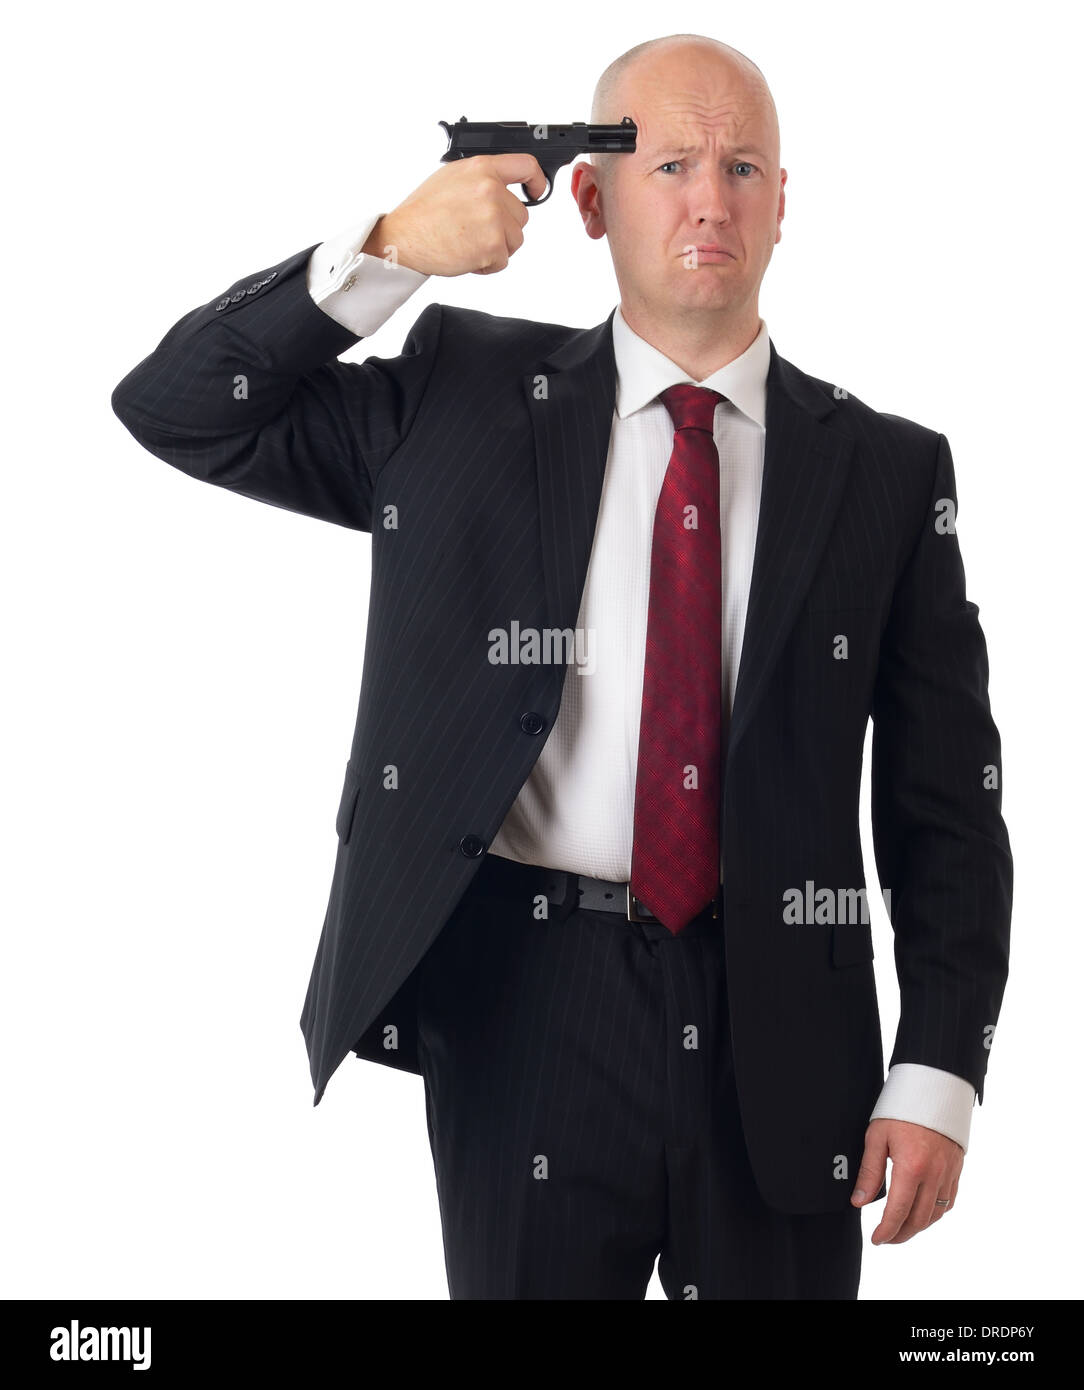 Businessman over stressed committing suicide isolated on white - Stock Image